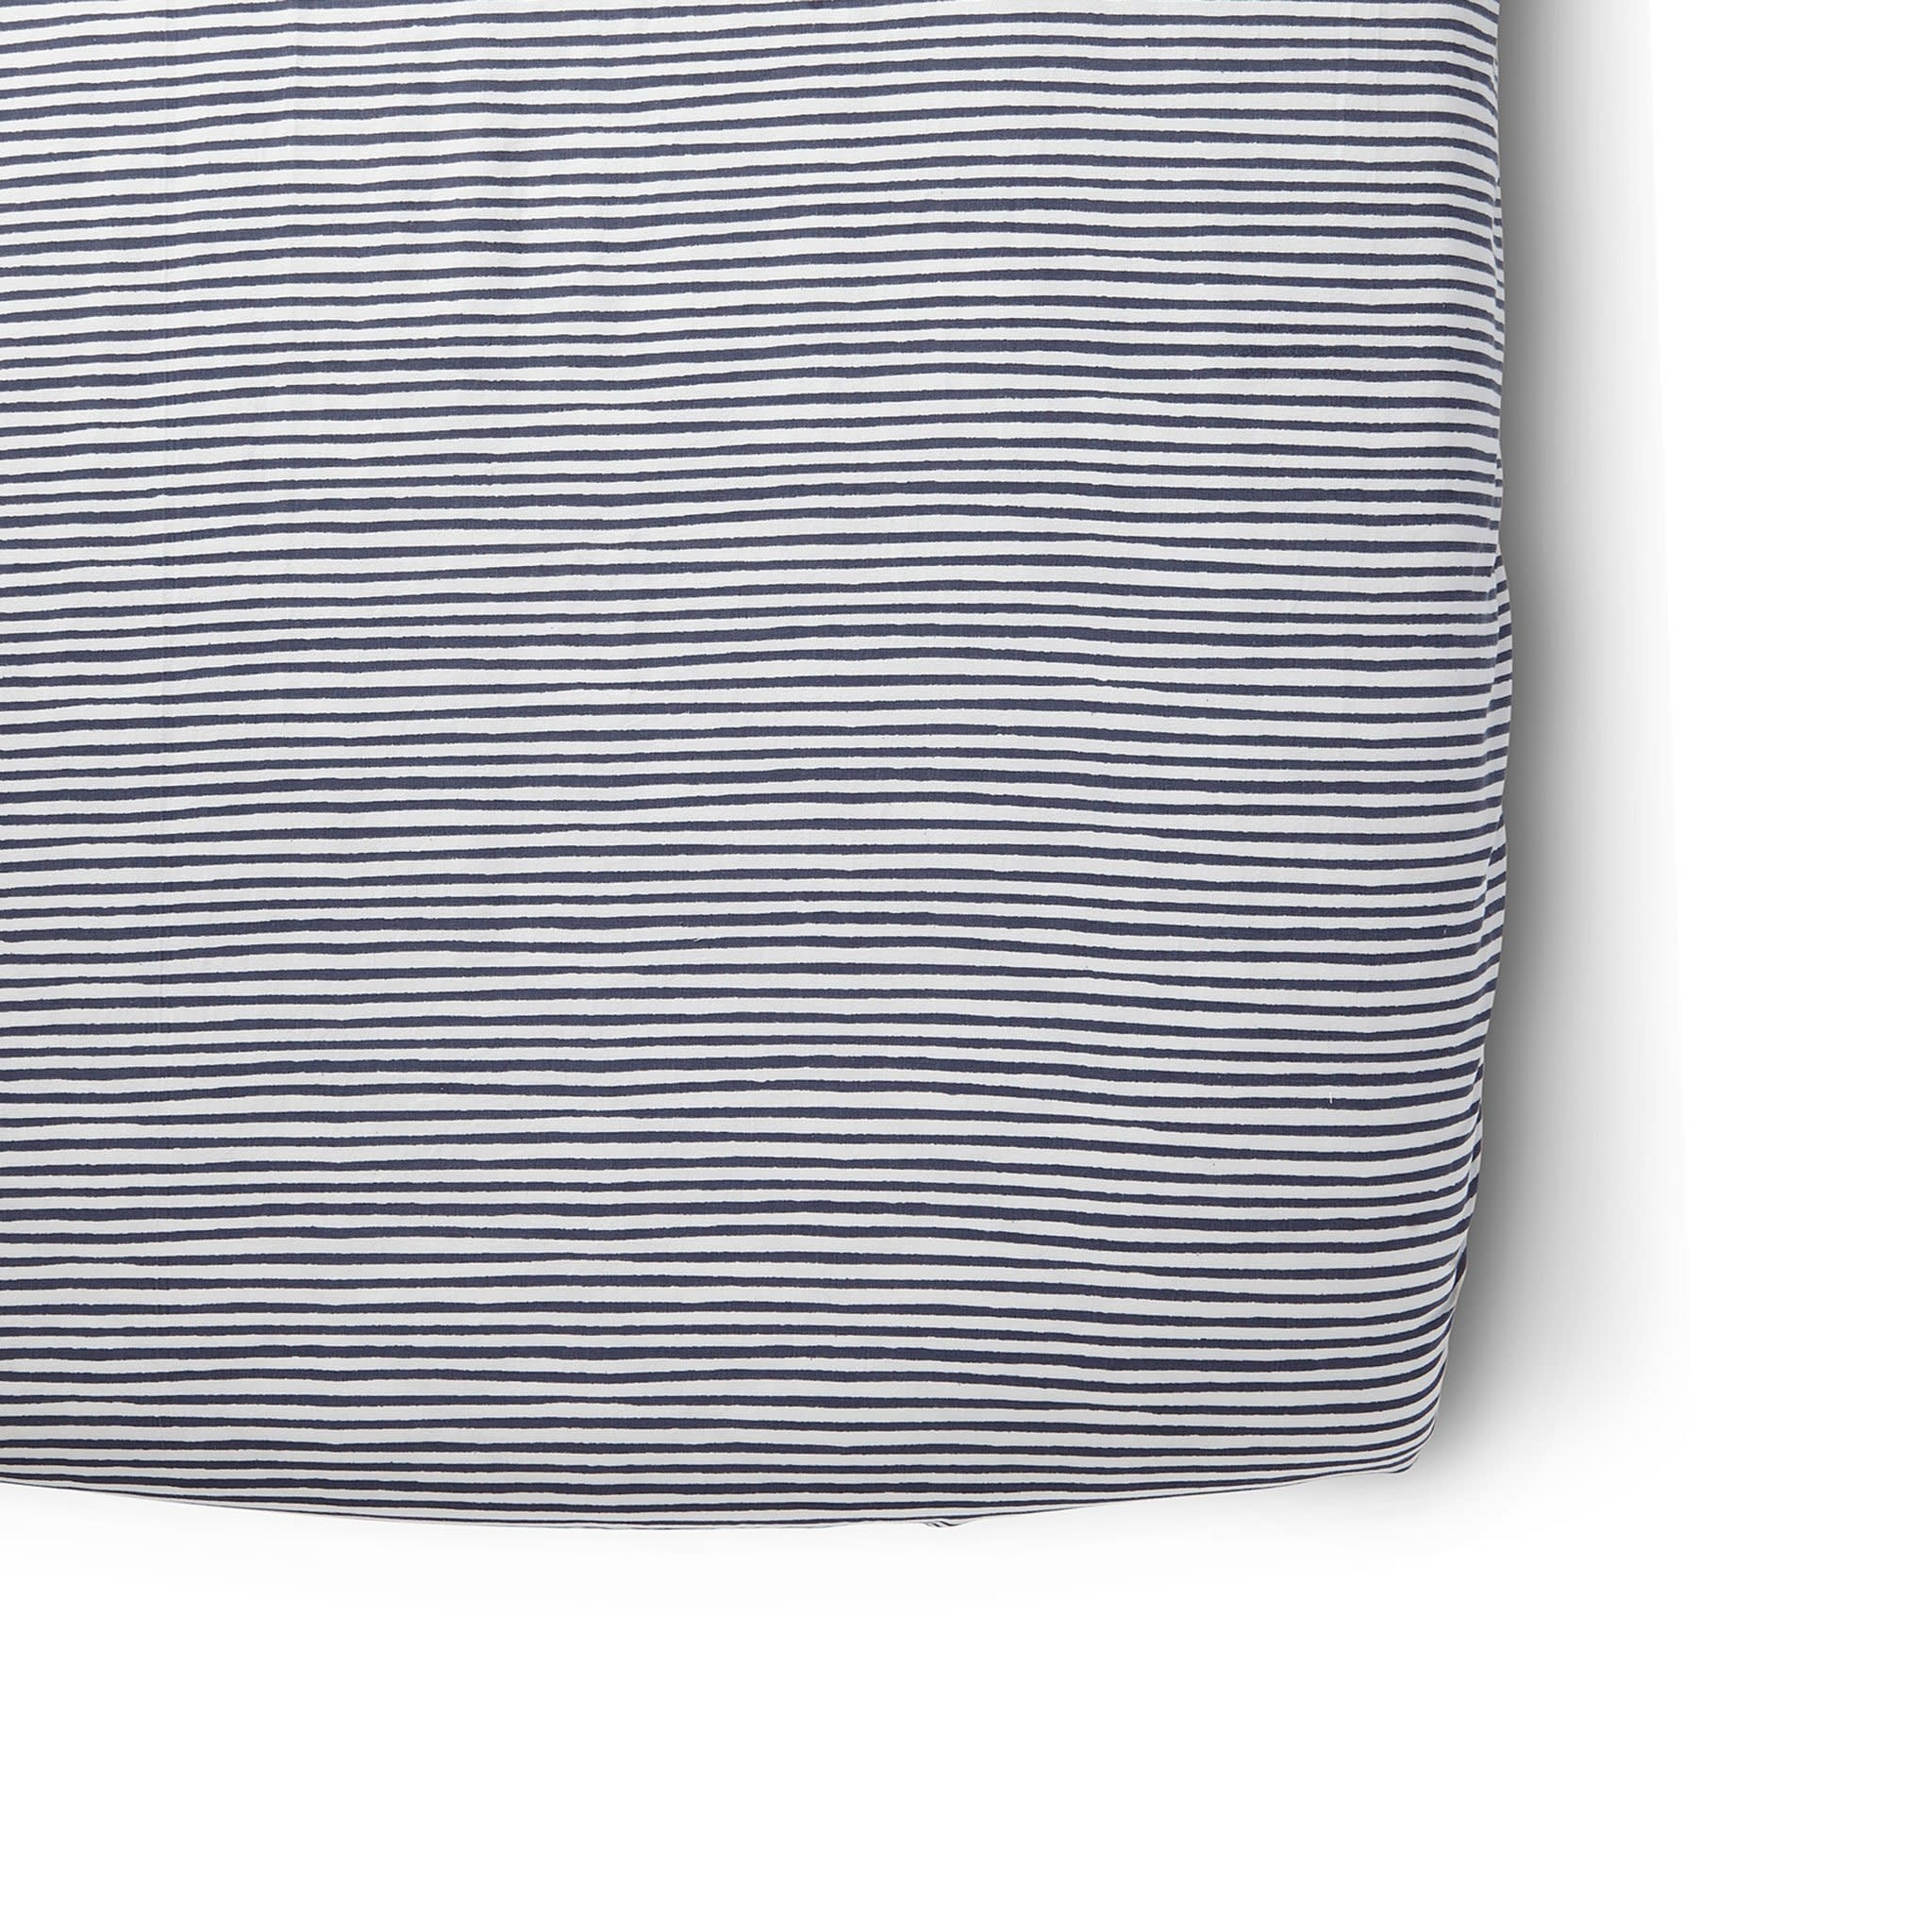 Pehr Designs Striped Crib Sheets- Stripes Away Ink Blue